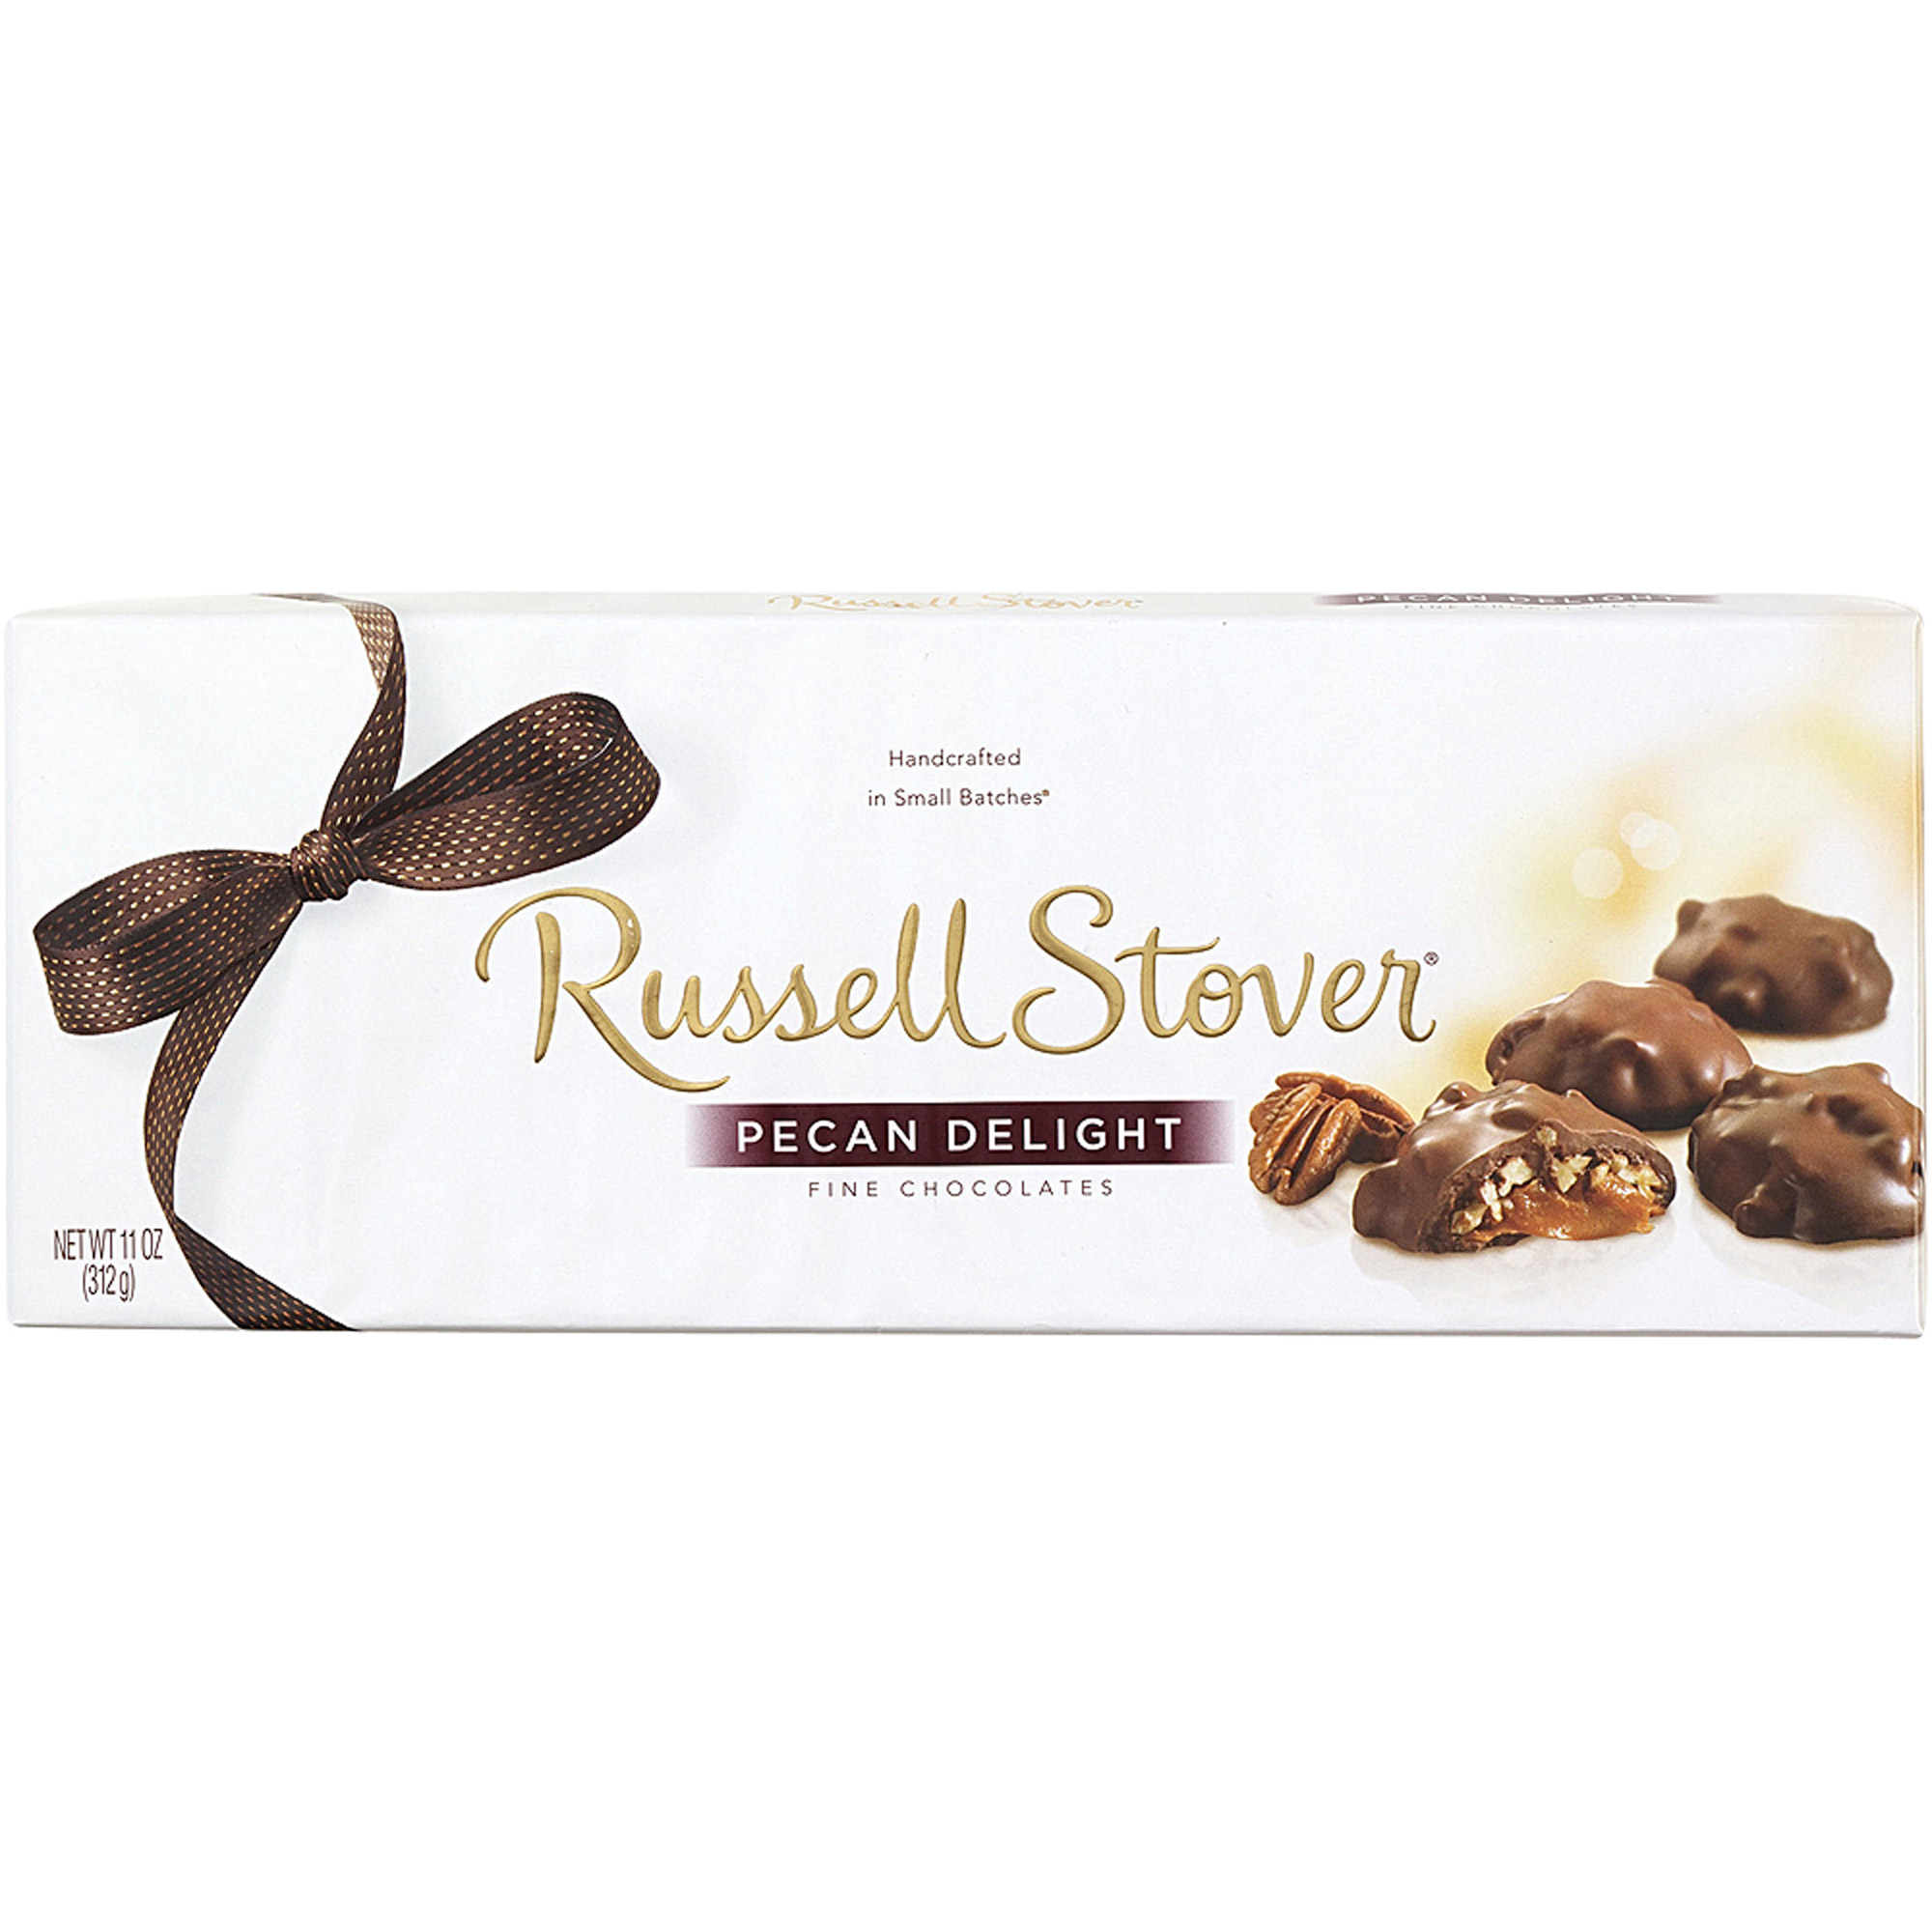 Russell Stover Pecan Delight Fine Chocolates, 11 Oz